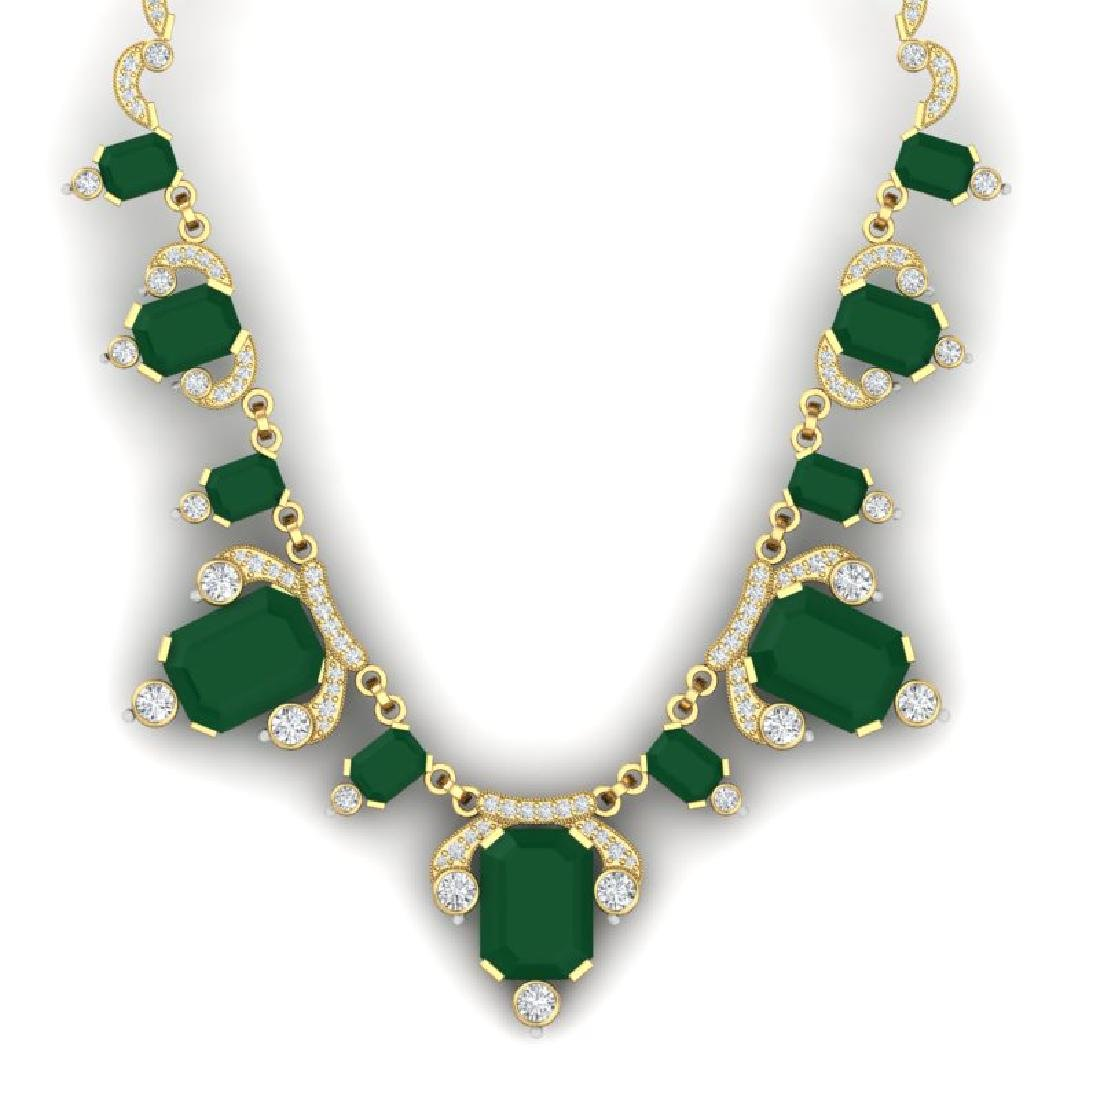 75.21 CTW Royalty Emerald & VS Diamond Necklace 18K